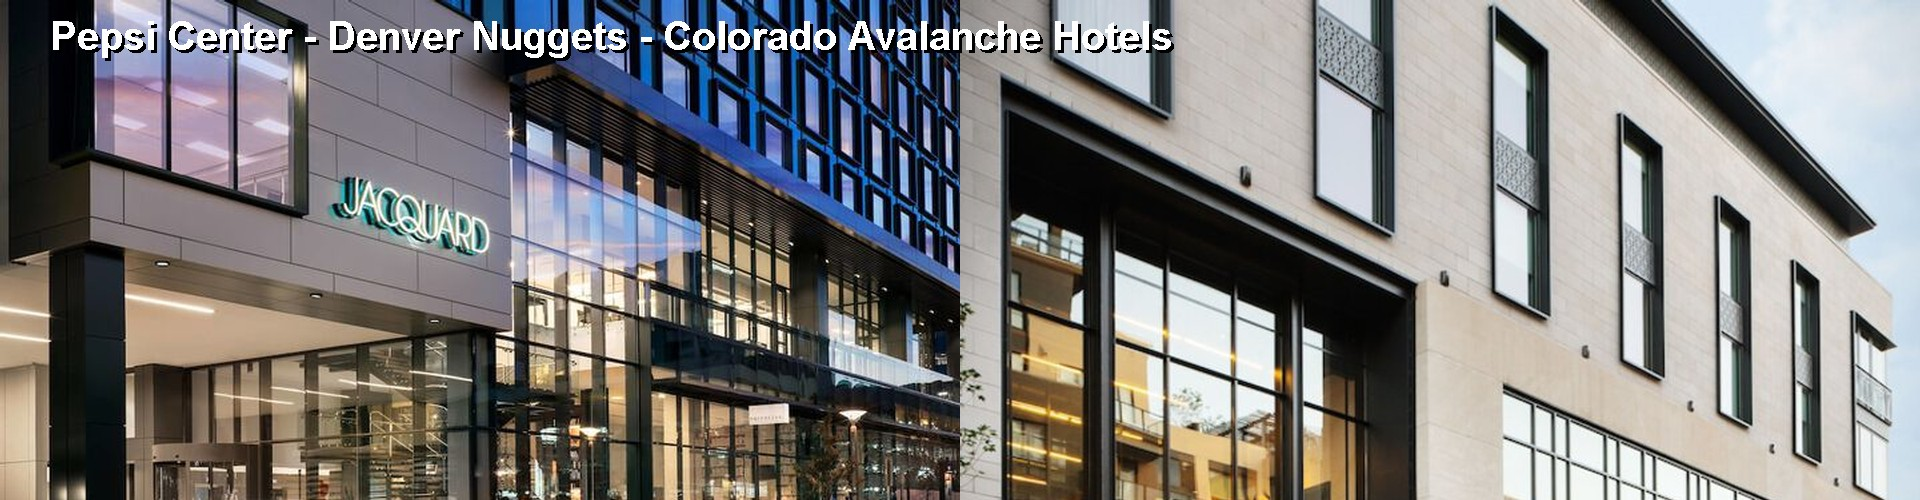 5 Best Hotels Near Pepsi Center Denver Nuggets Colorado Avalanche